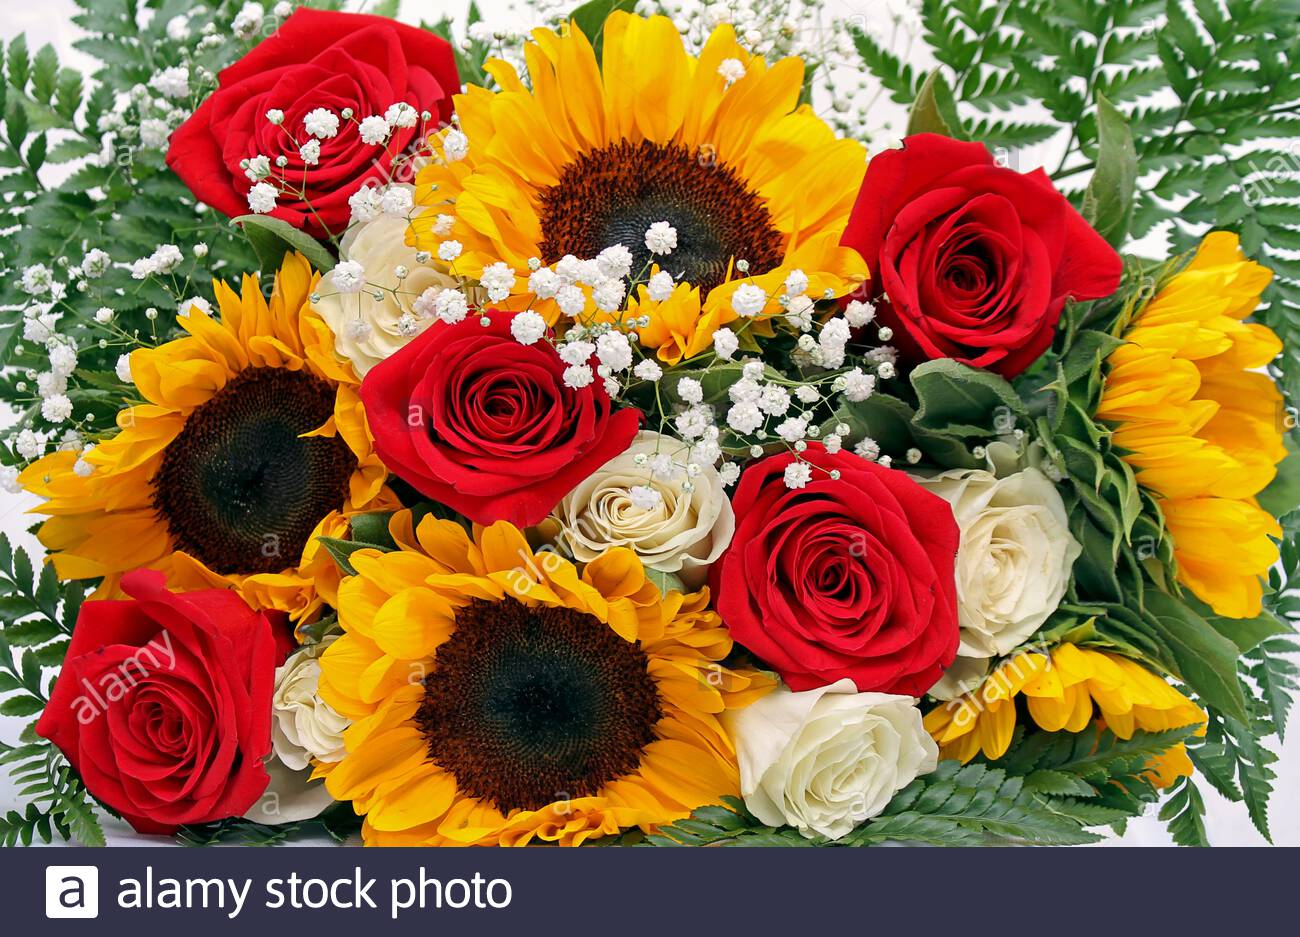 Flower Arrangement With Fresh Roses Sunflowers Gypsophila Or Paniculata And Fern Leaves Photographed Close Up Occupying The Entire Image Stock Photo Alamy